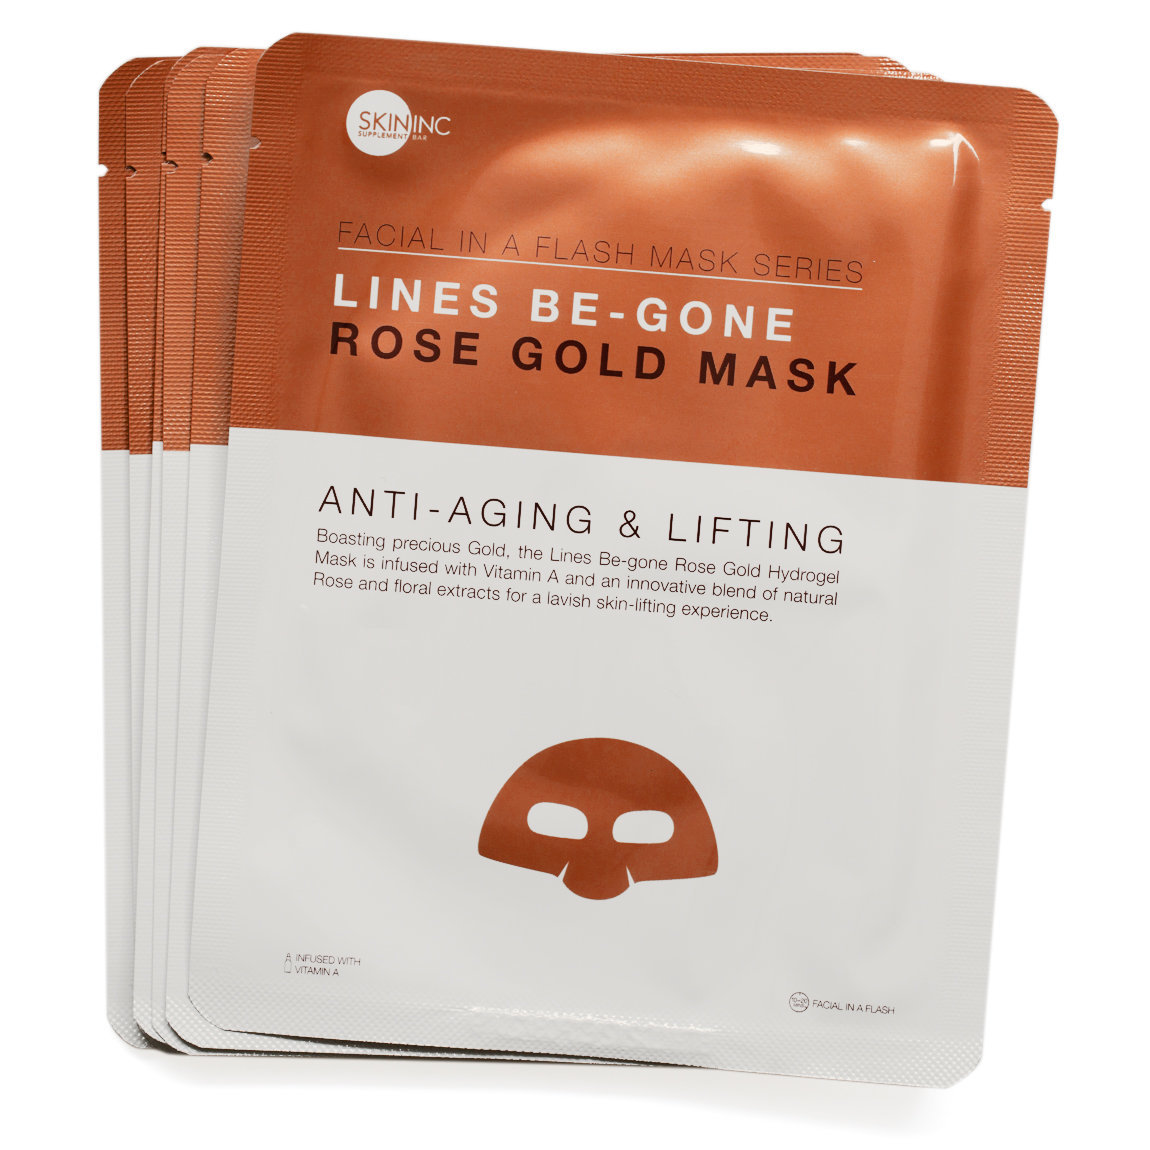 Skin Inc Supplement Bar Facial In-A-Flash Lines Be-Gone Rose Gold Mask 3-Pack product swatch.